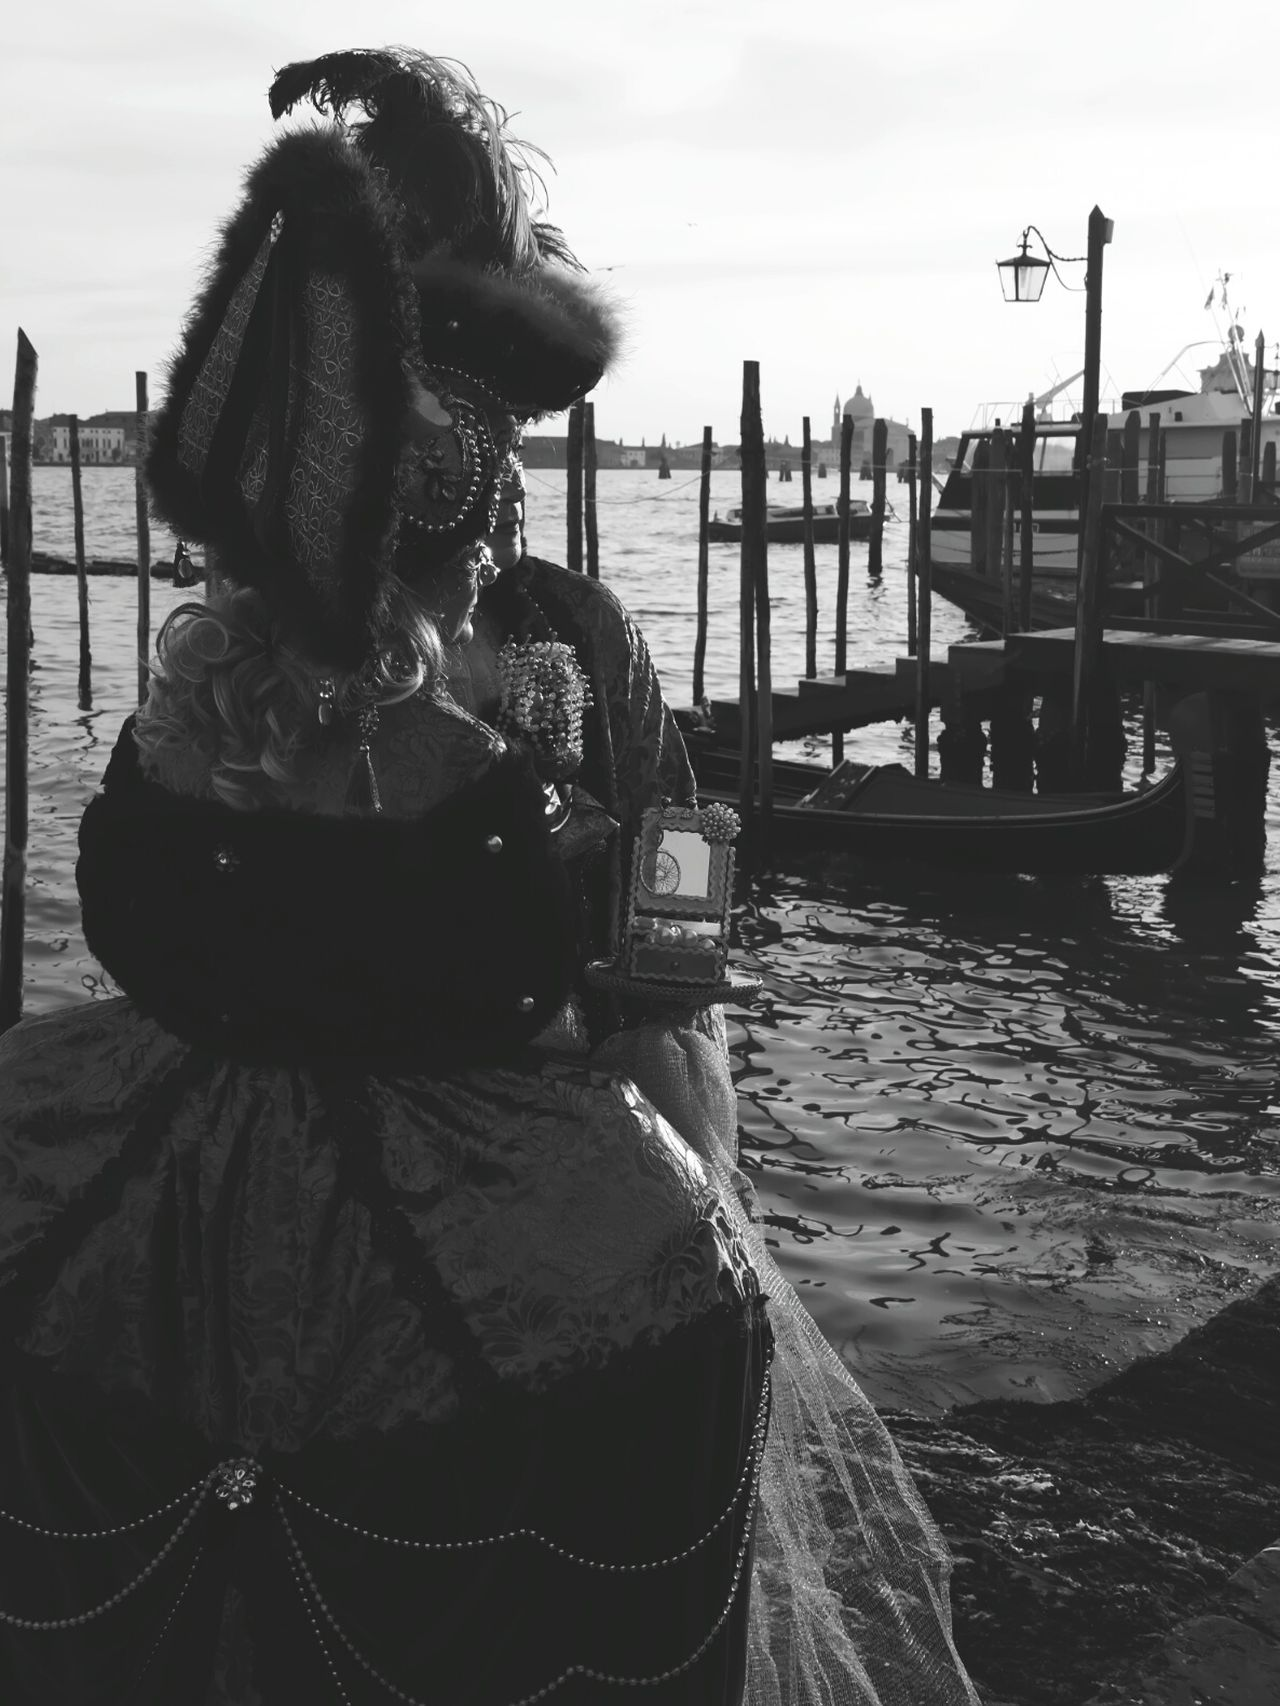 Original Photography Venezia Shadow Gondole In Venice Venice Carnival Venice, Italy Old Foto  Thinking About Life Thinking Of Him Melancholic Landscapes